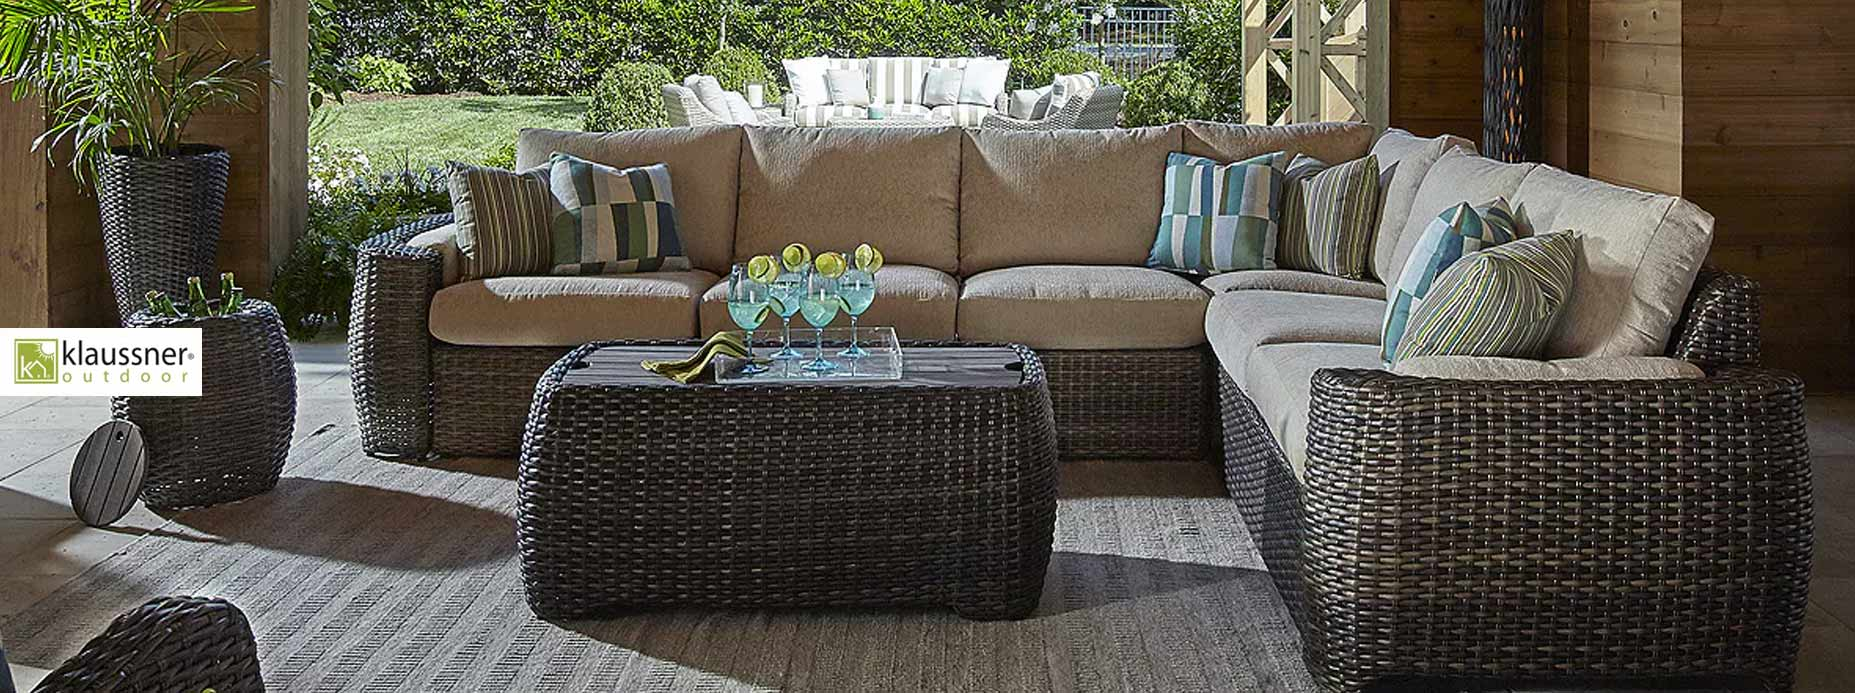 Klaussner Outdoor Furniture Discount Store Showroom In Hickory Nc